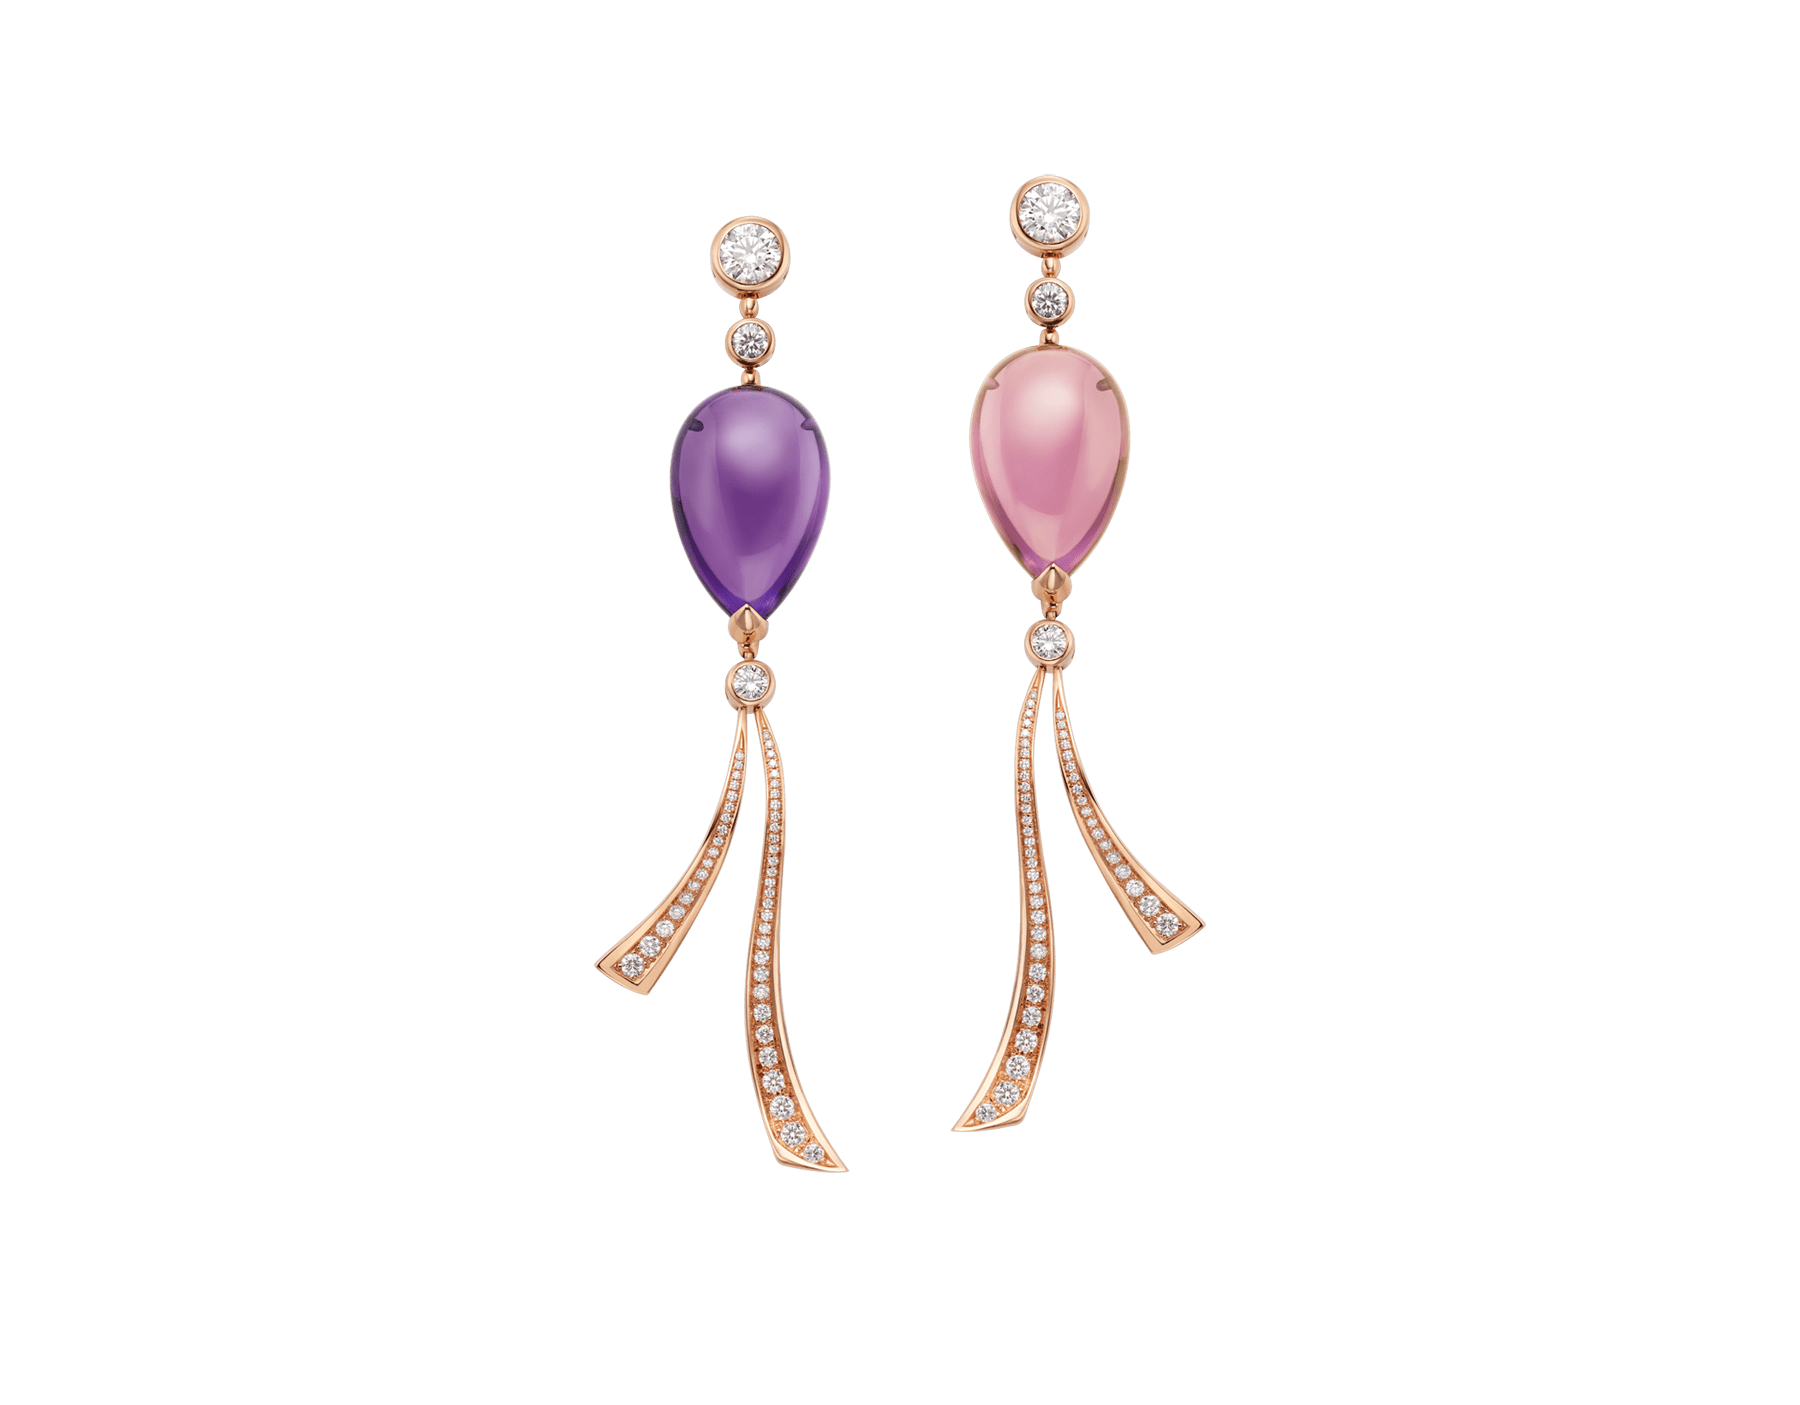 Boucles d'oreilles Festa en or rose 18 K serties de pierres de couleur, diamants taille brillant et pavé diamants 355863 image 2